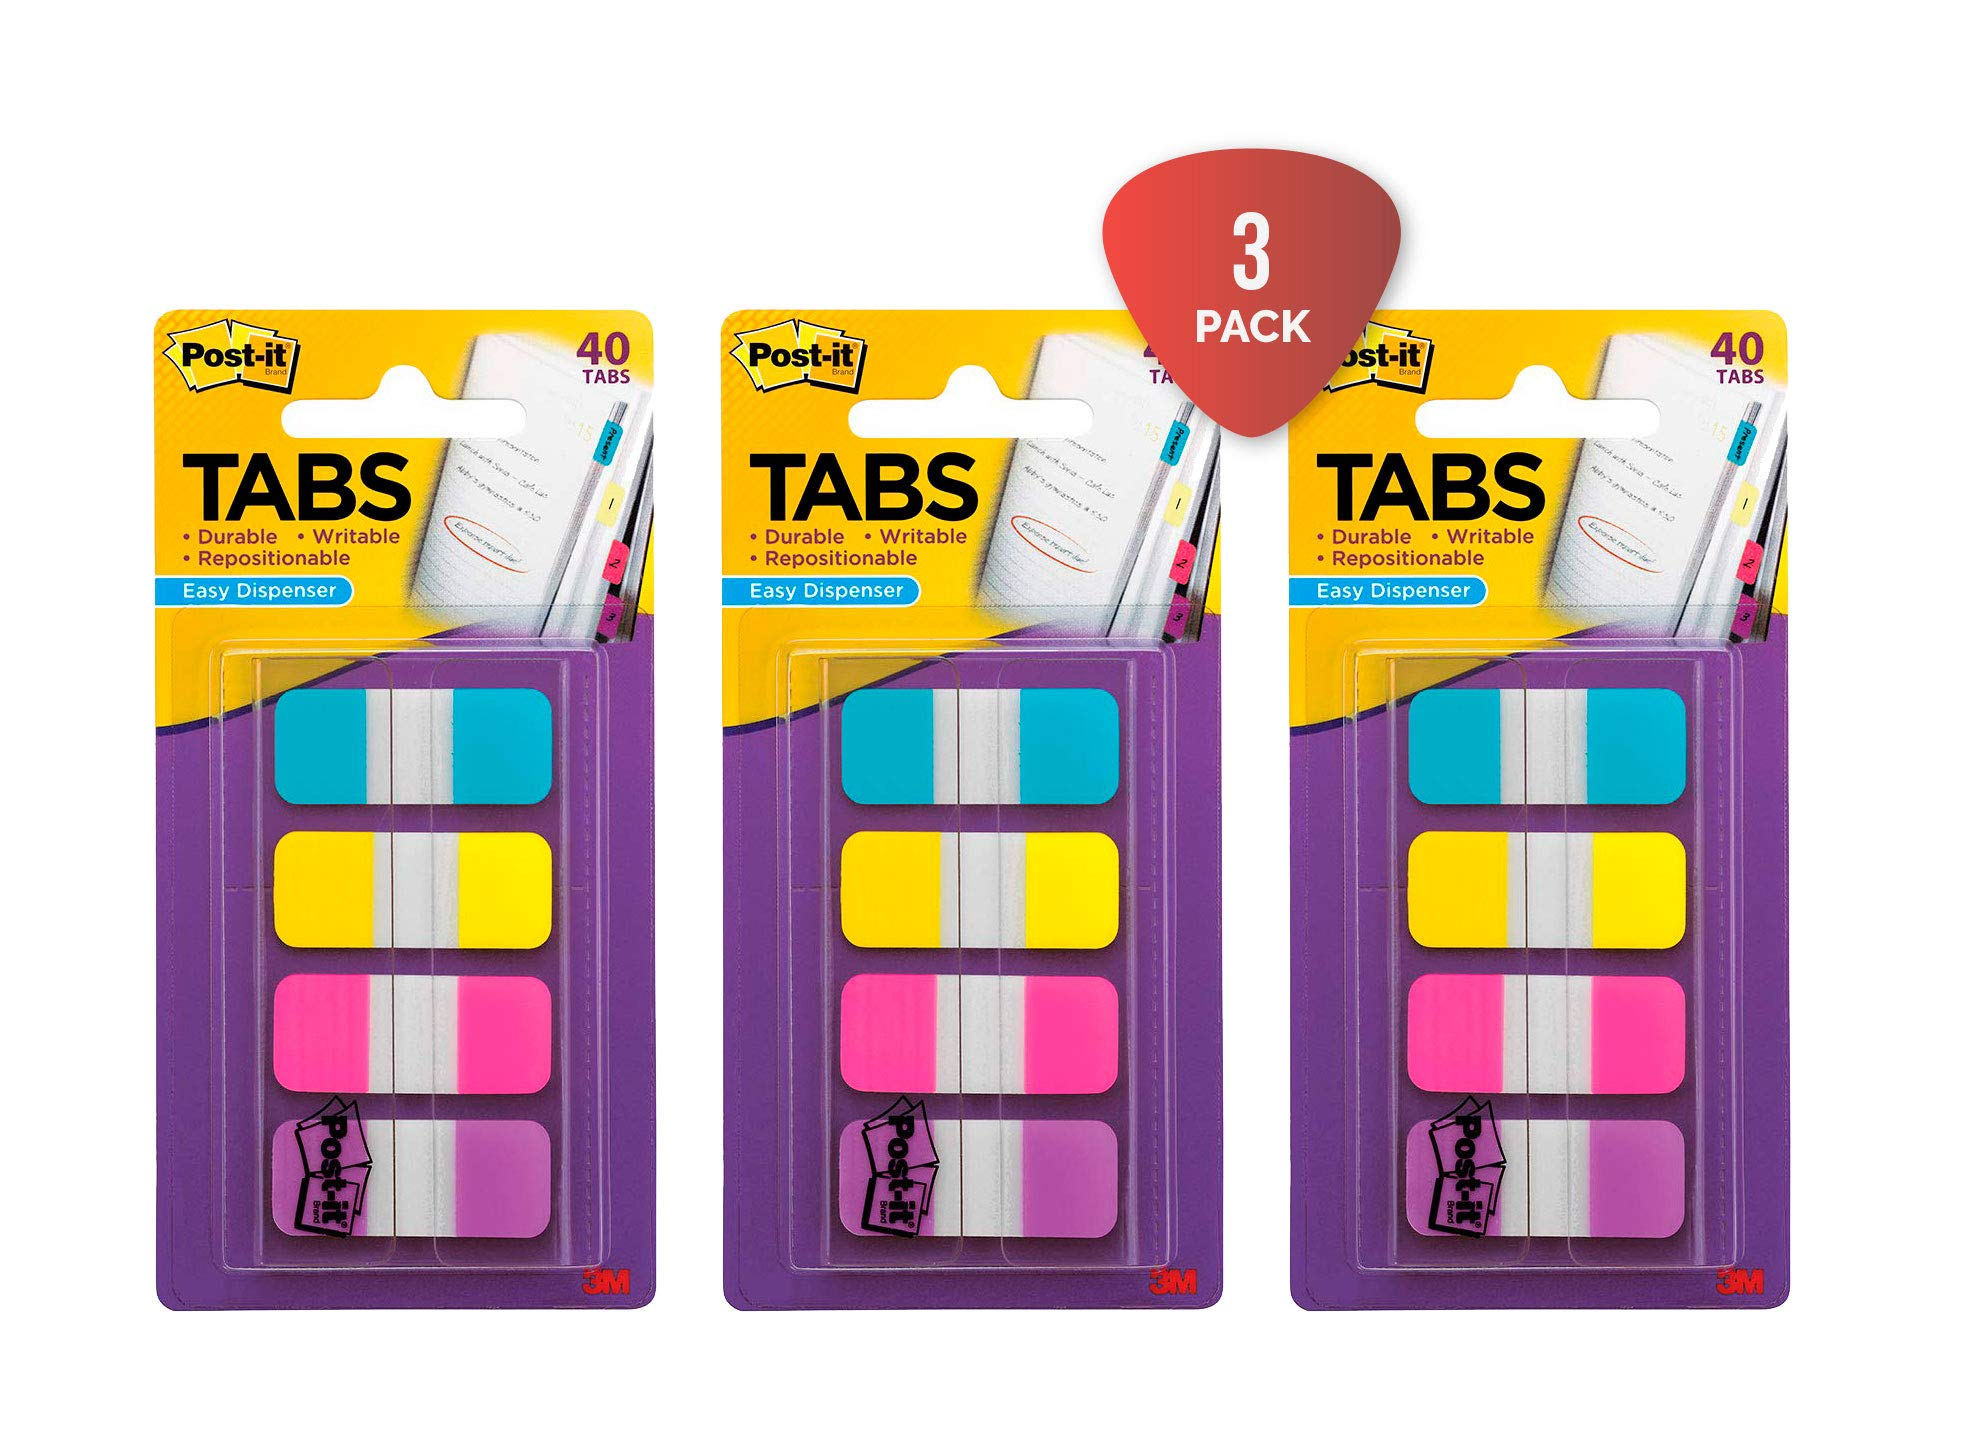 Post-it Tabs.625 in. Solid, Aqua, Yellow, Pink, Violet, Durable, Writable, Repositionable, Sticks Securely, Removes Cleanly, 10/Color, 40/Dispenser, (676-AYPV) Pack of 3 by Post-it